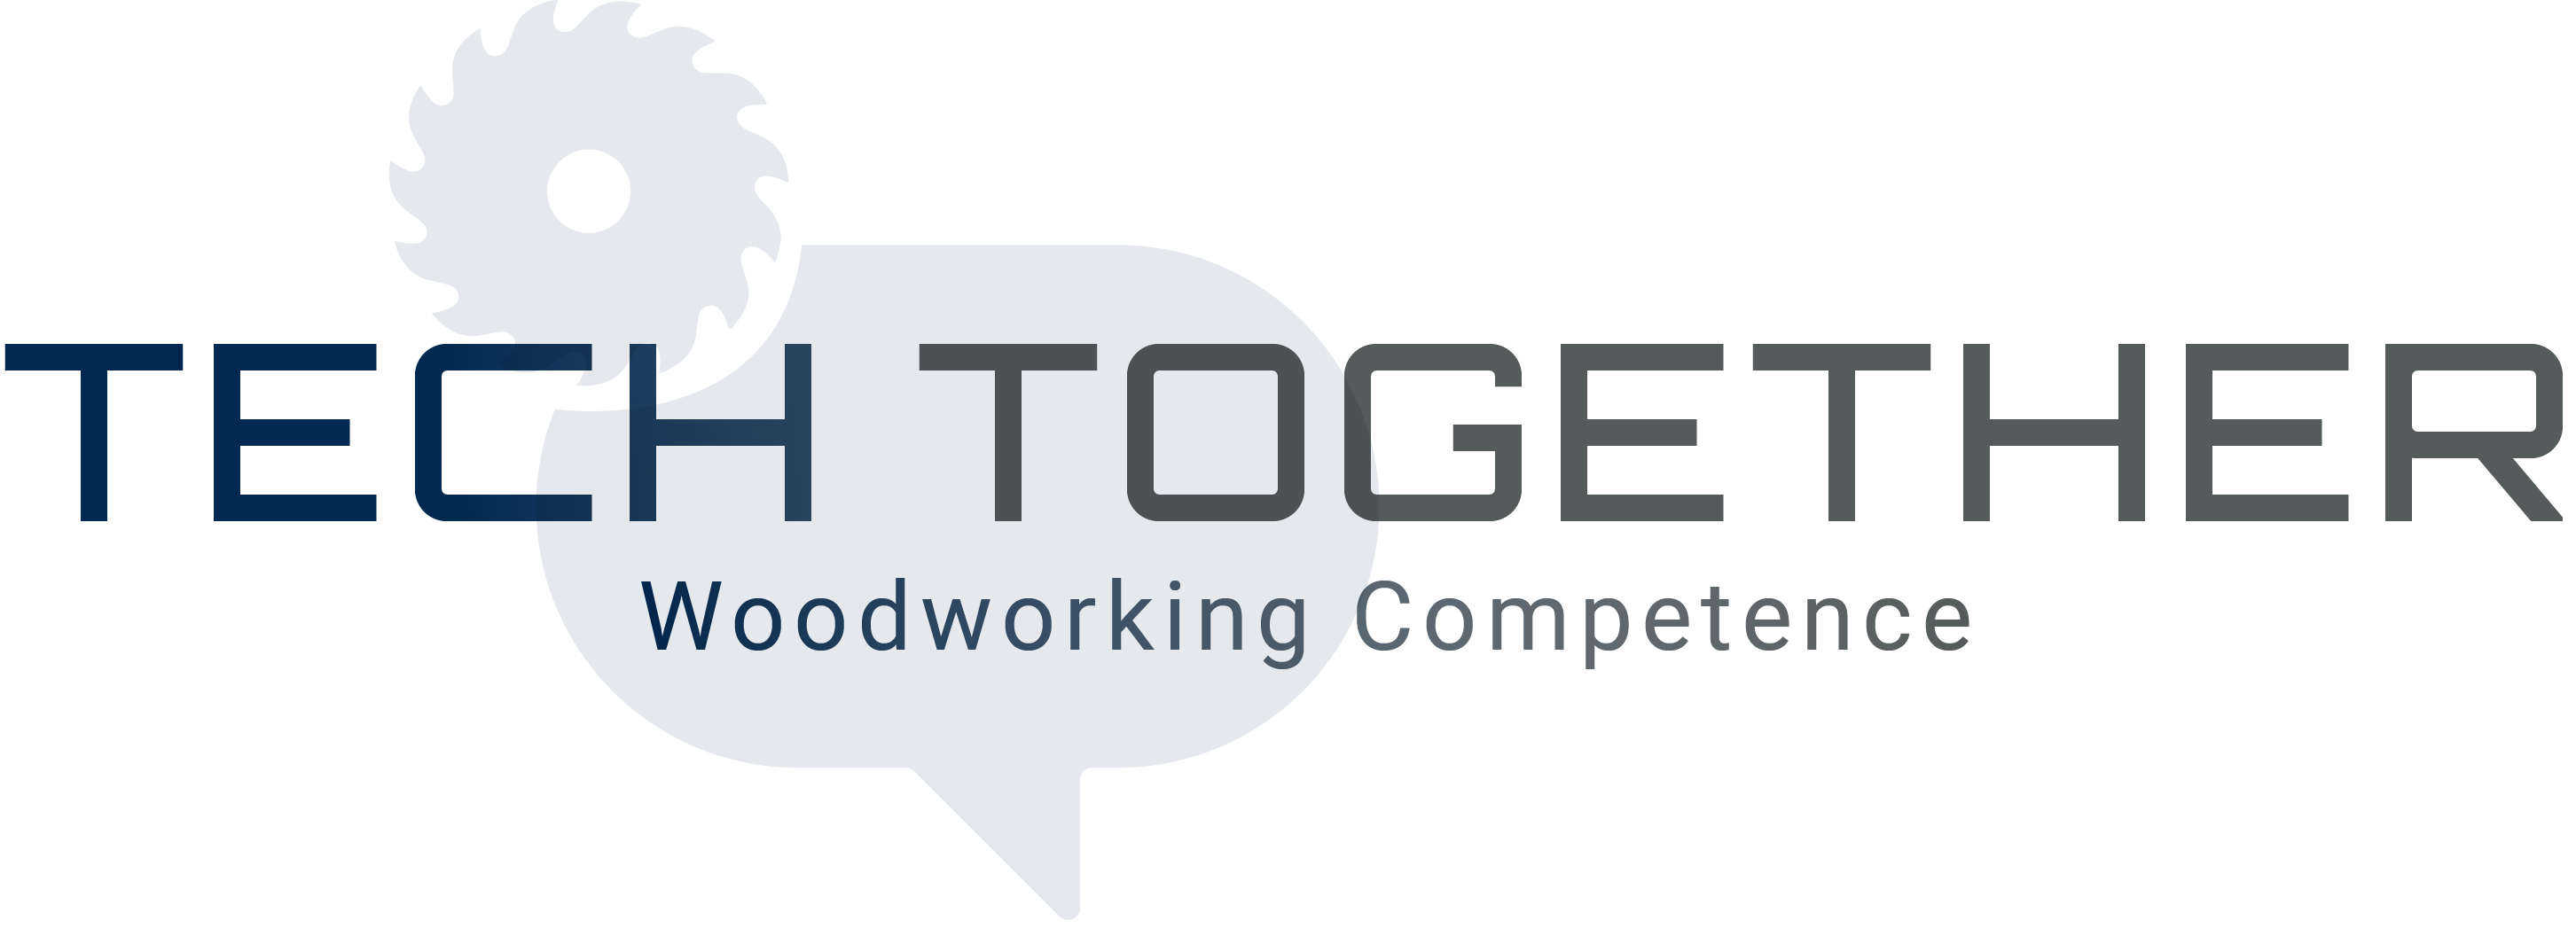 Tech Together – Woodworking Competence.